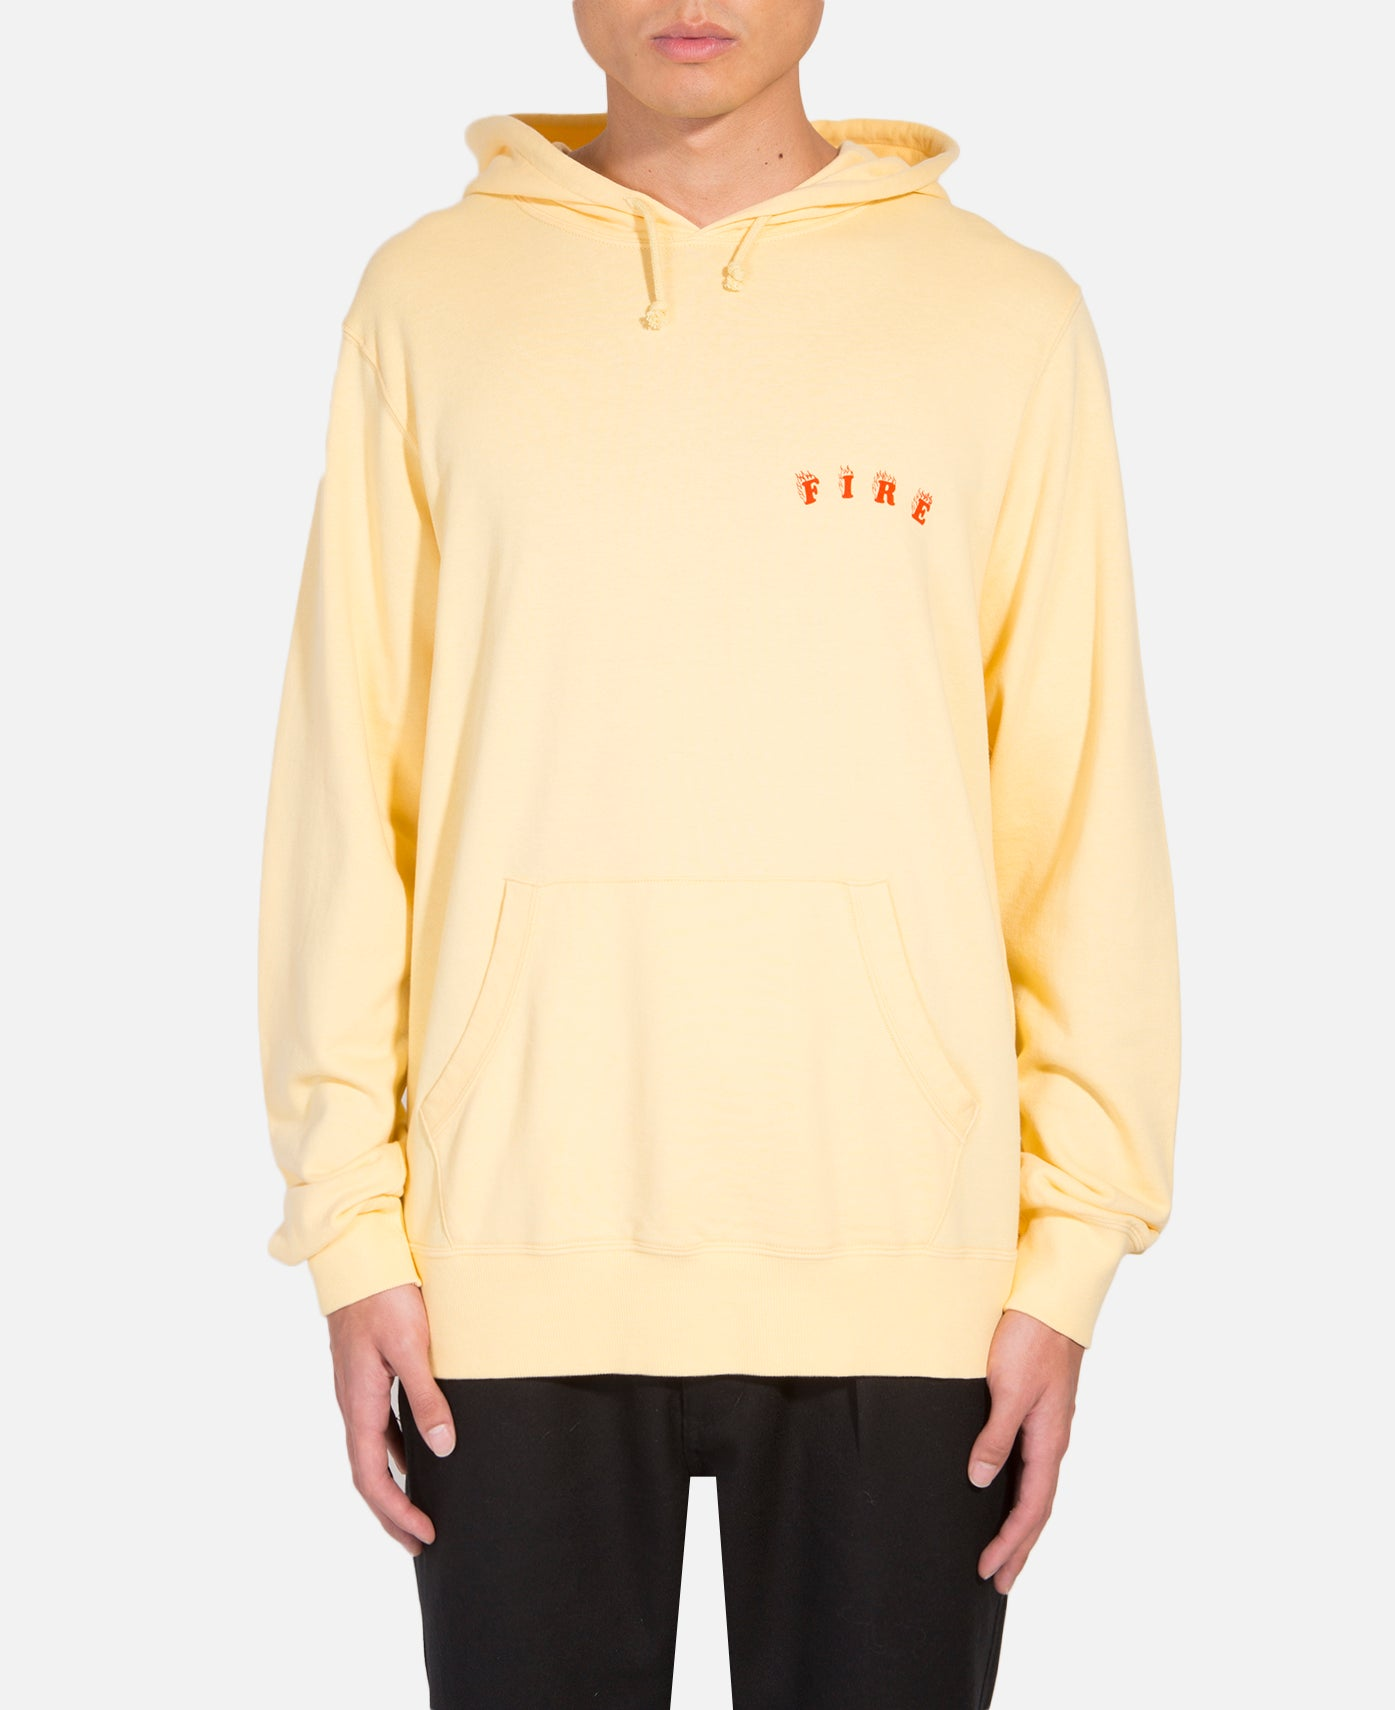 Lightweight Pullover Hooded Sweat Shirt (Type-4)